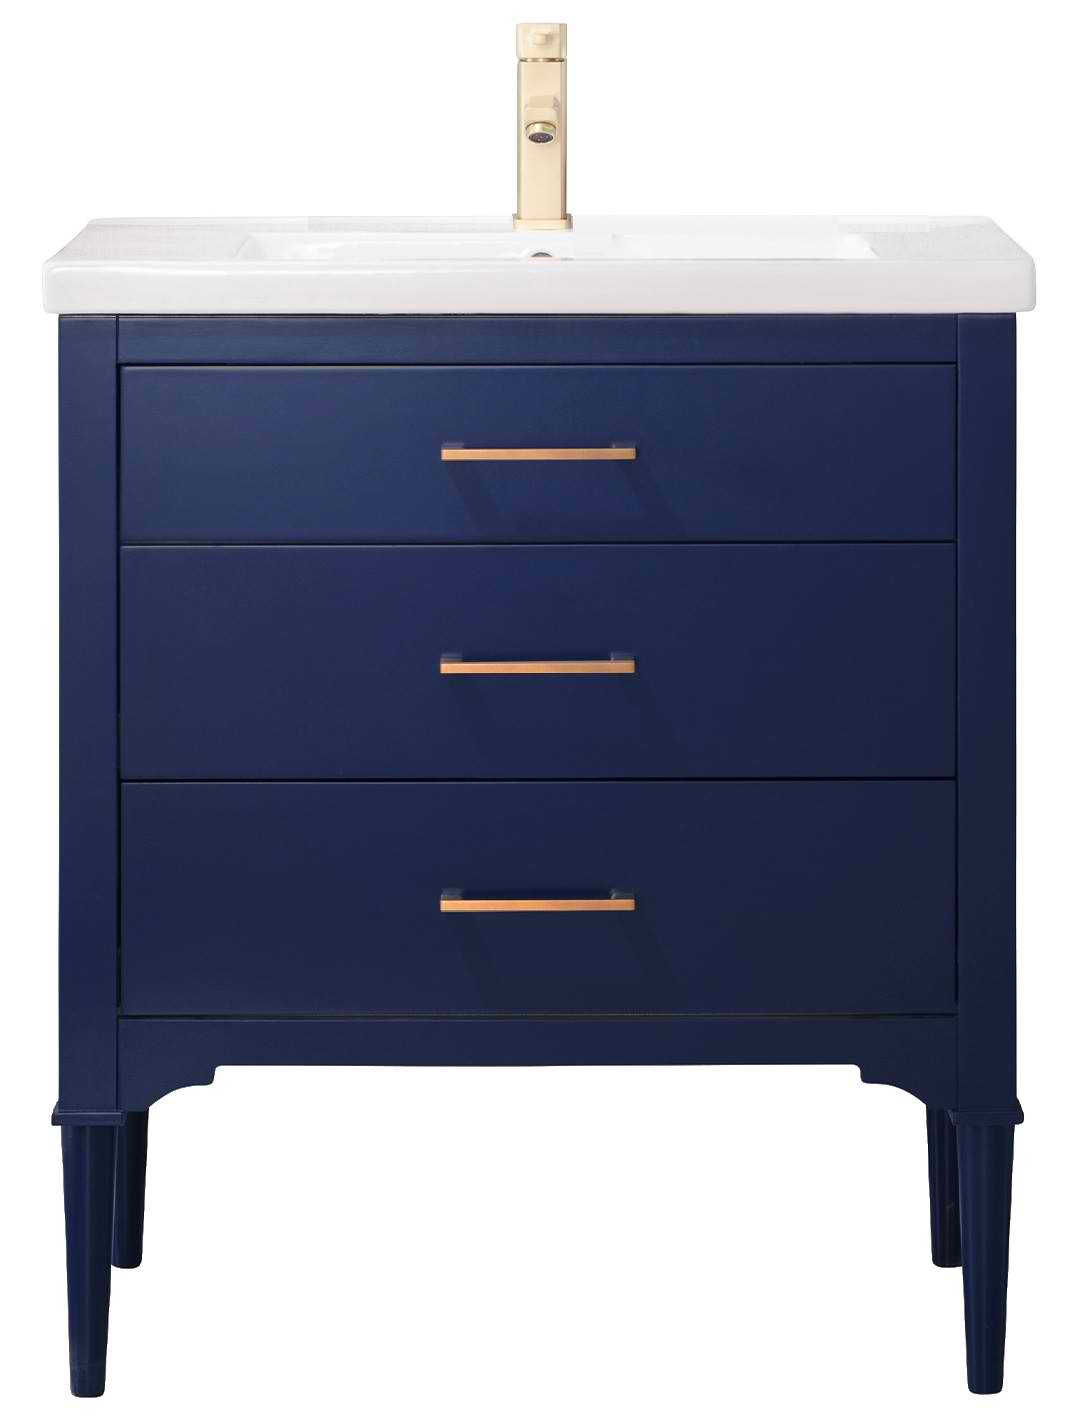 """30"""" Transitional Single Sink Vanity with Porcelain Integrated Counterop and Sink in Blue Finish"""